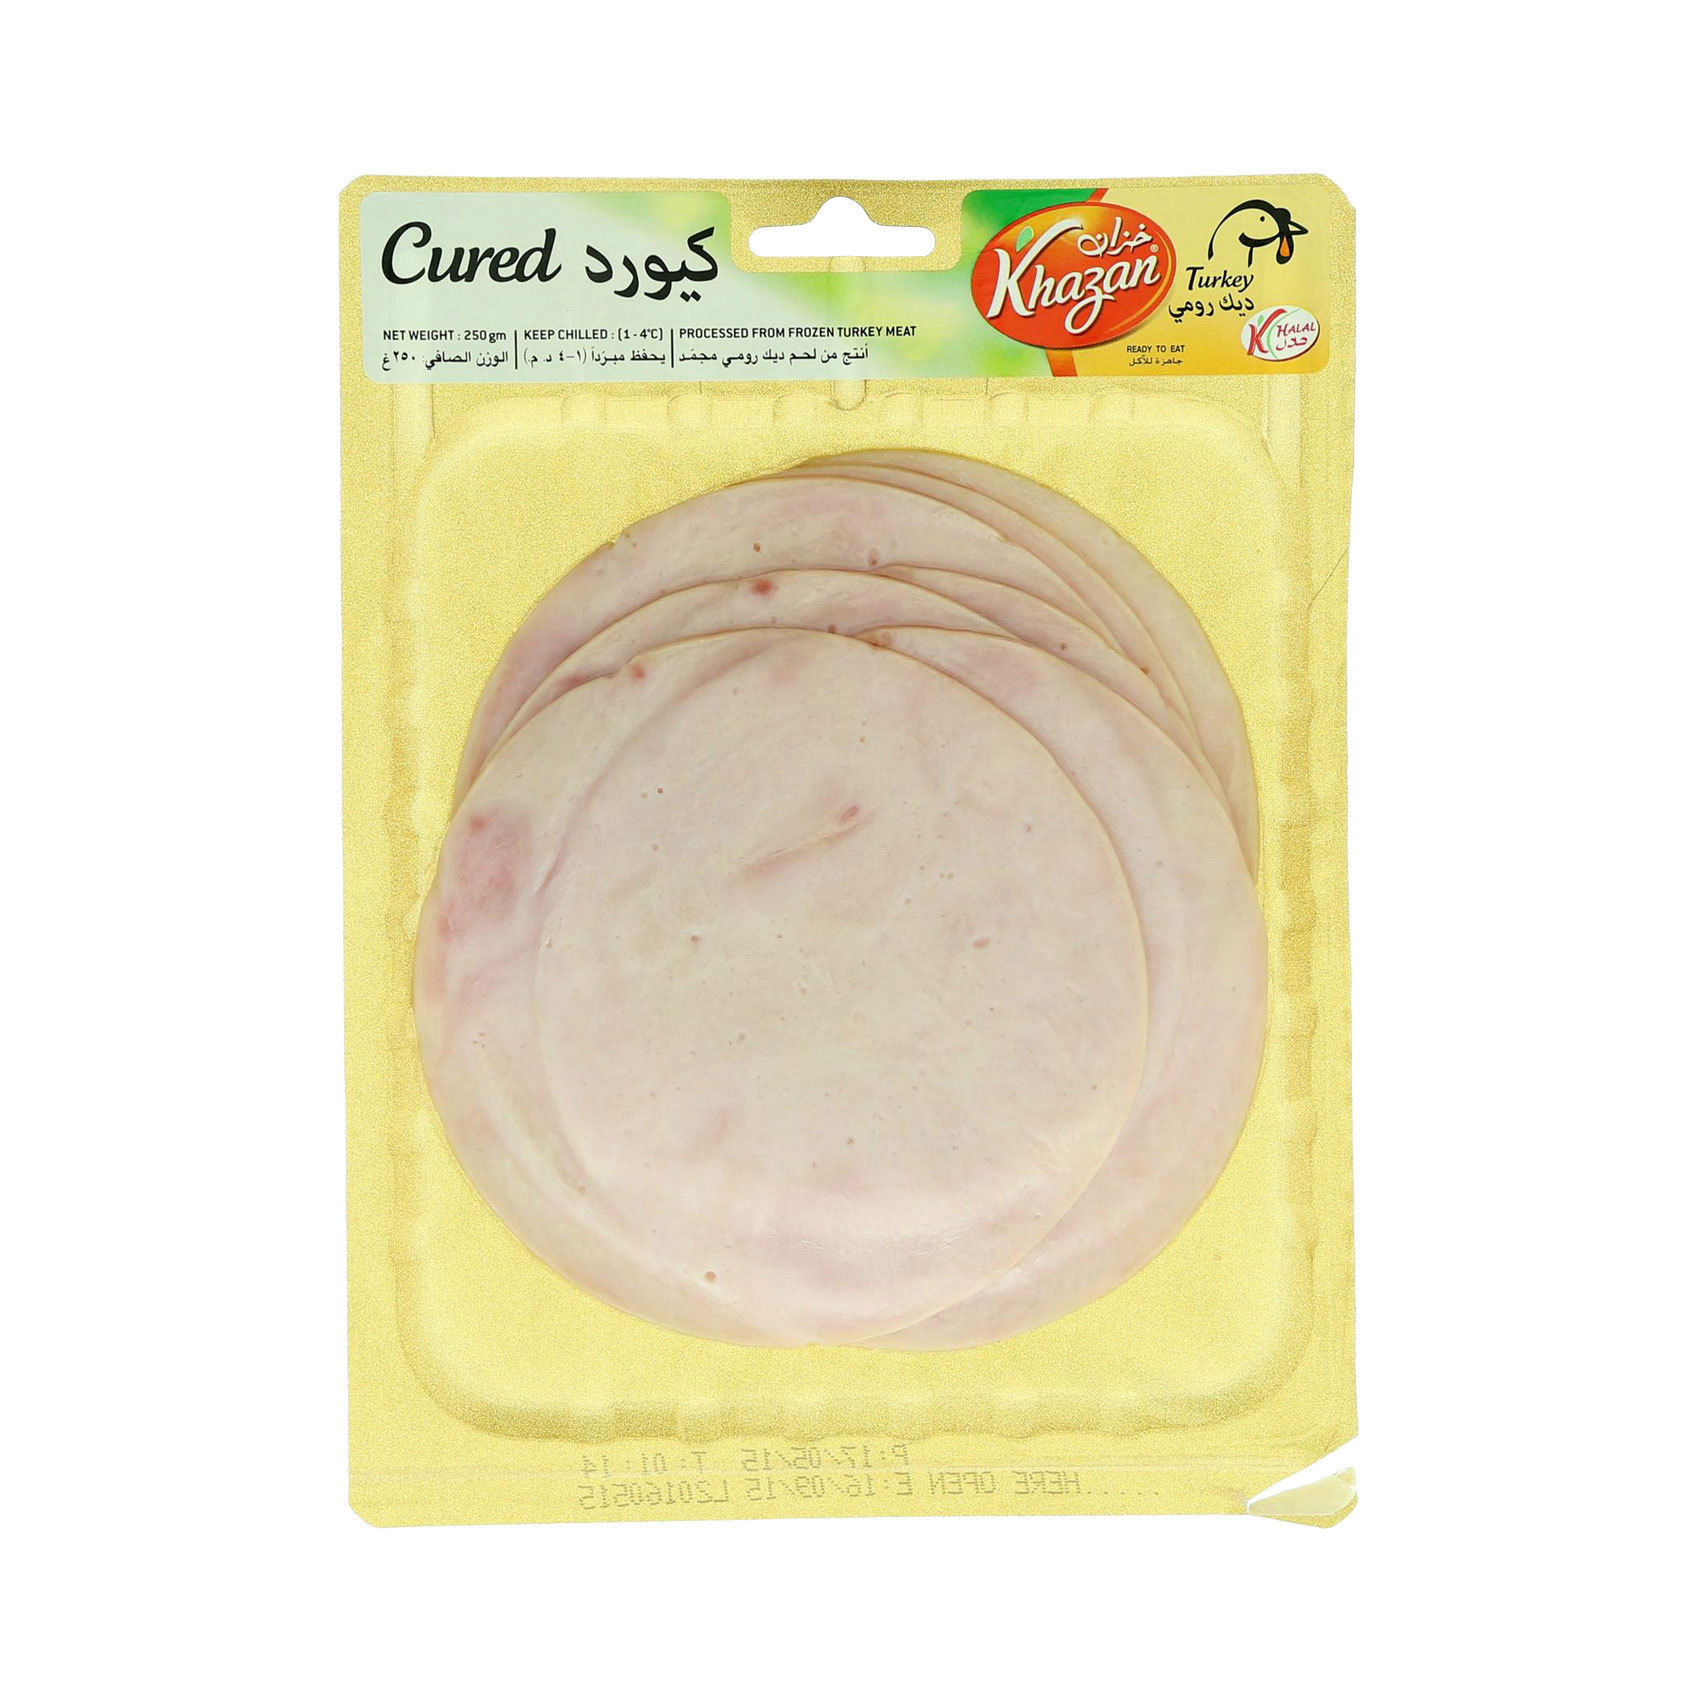 KHAZAN TURKEY CURED SLICES 250G